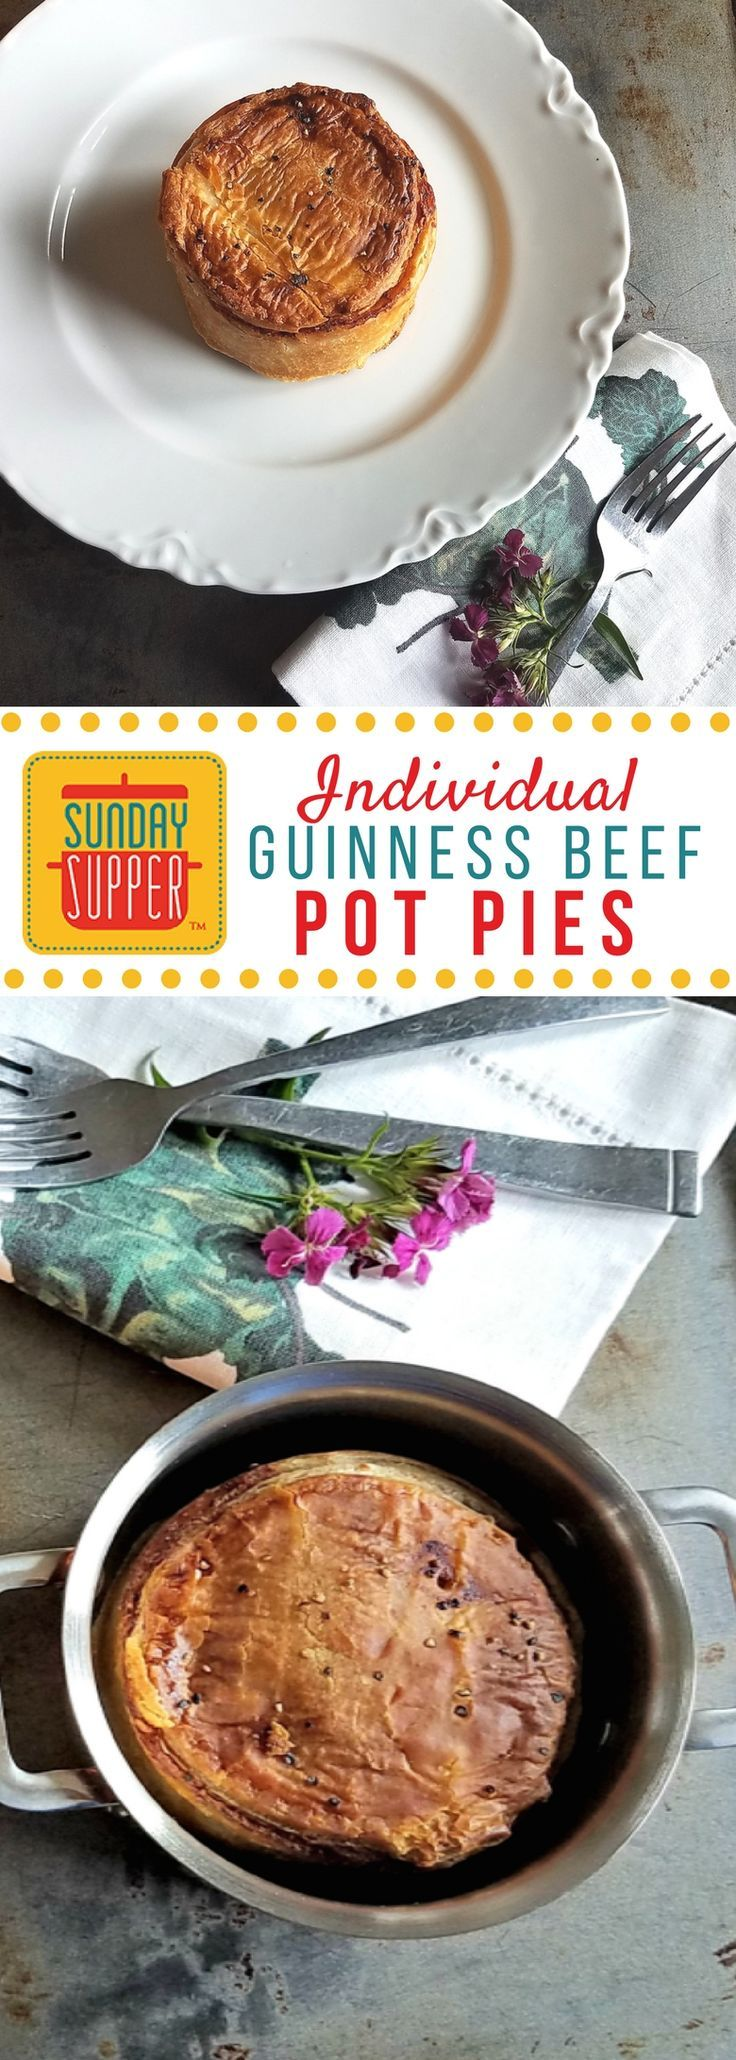 These Guinness Beef Pot Pies boast a rich stout beef stew, topped with a flaky puff pastry crust and perfectly portioned in individual ramekins #SundaySupper